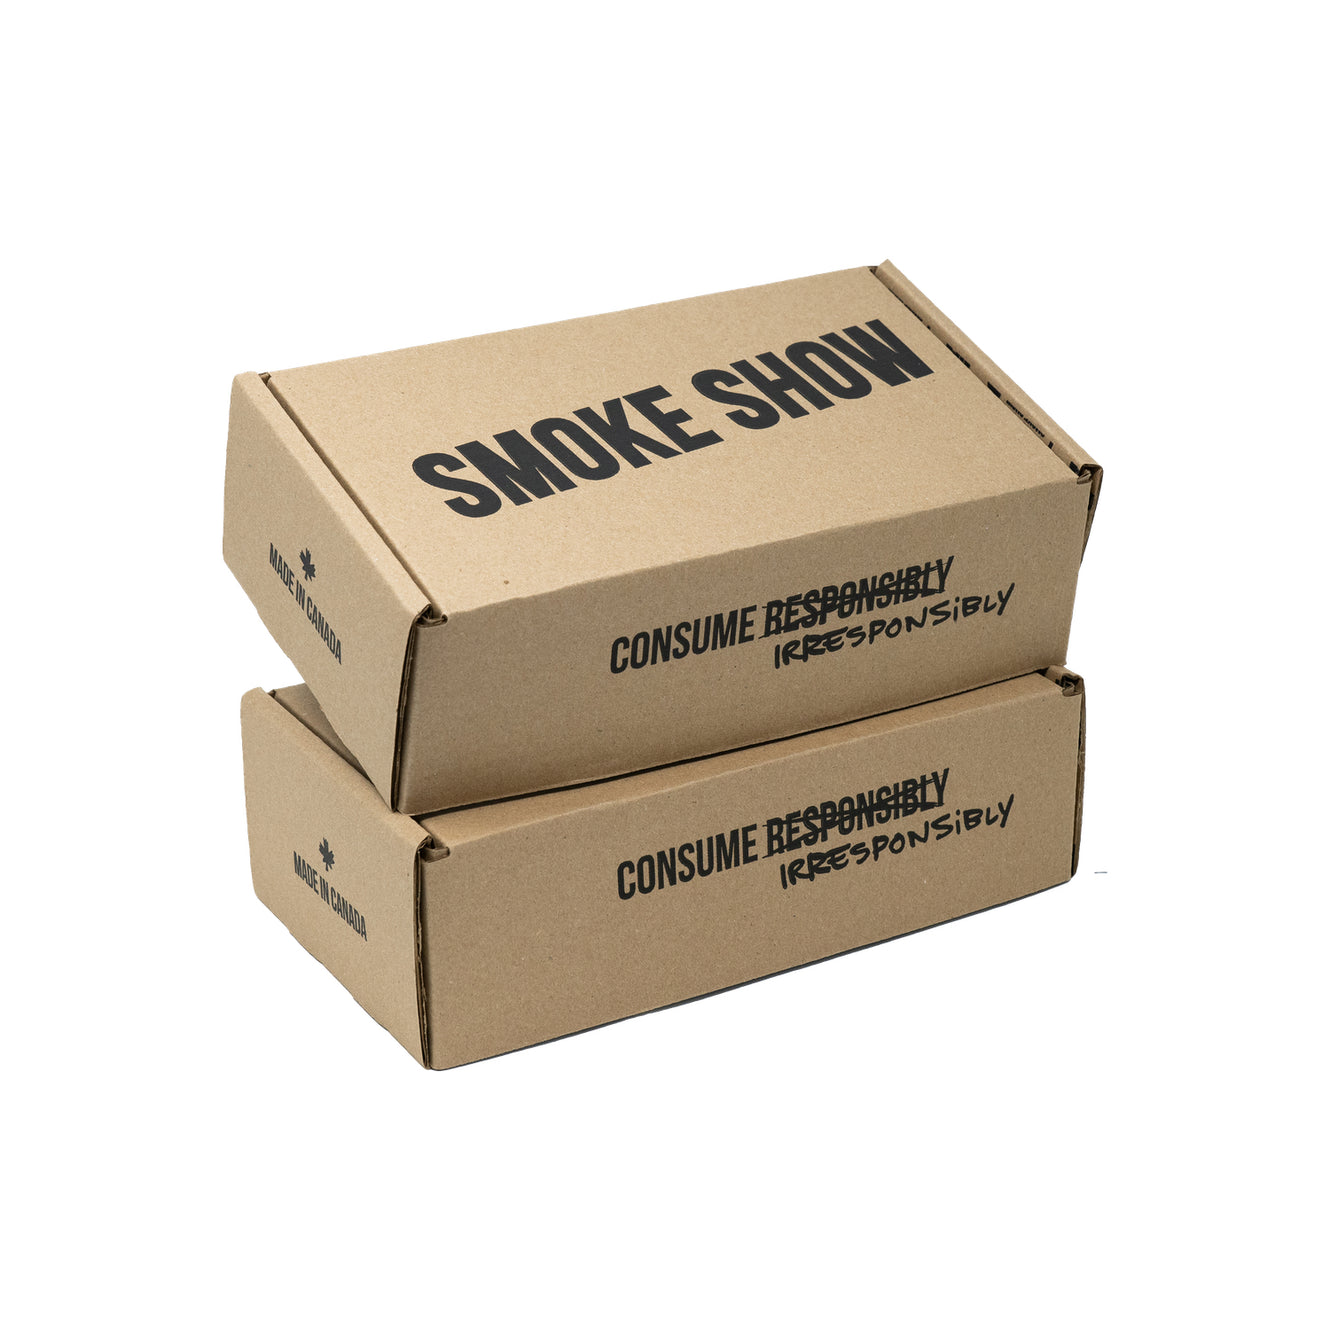 Image for 2 x Smoke Show Starter Pack Bundle